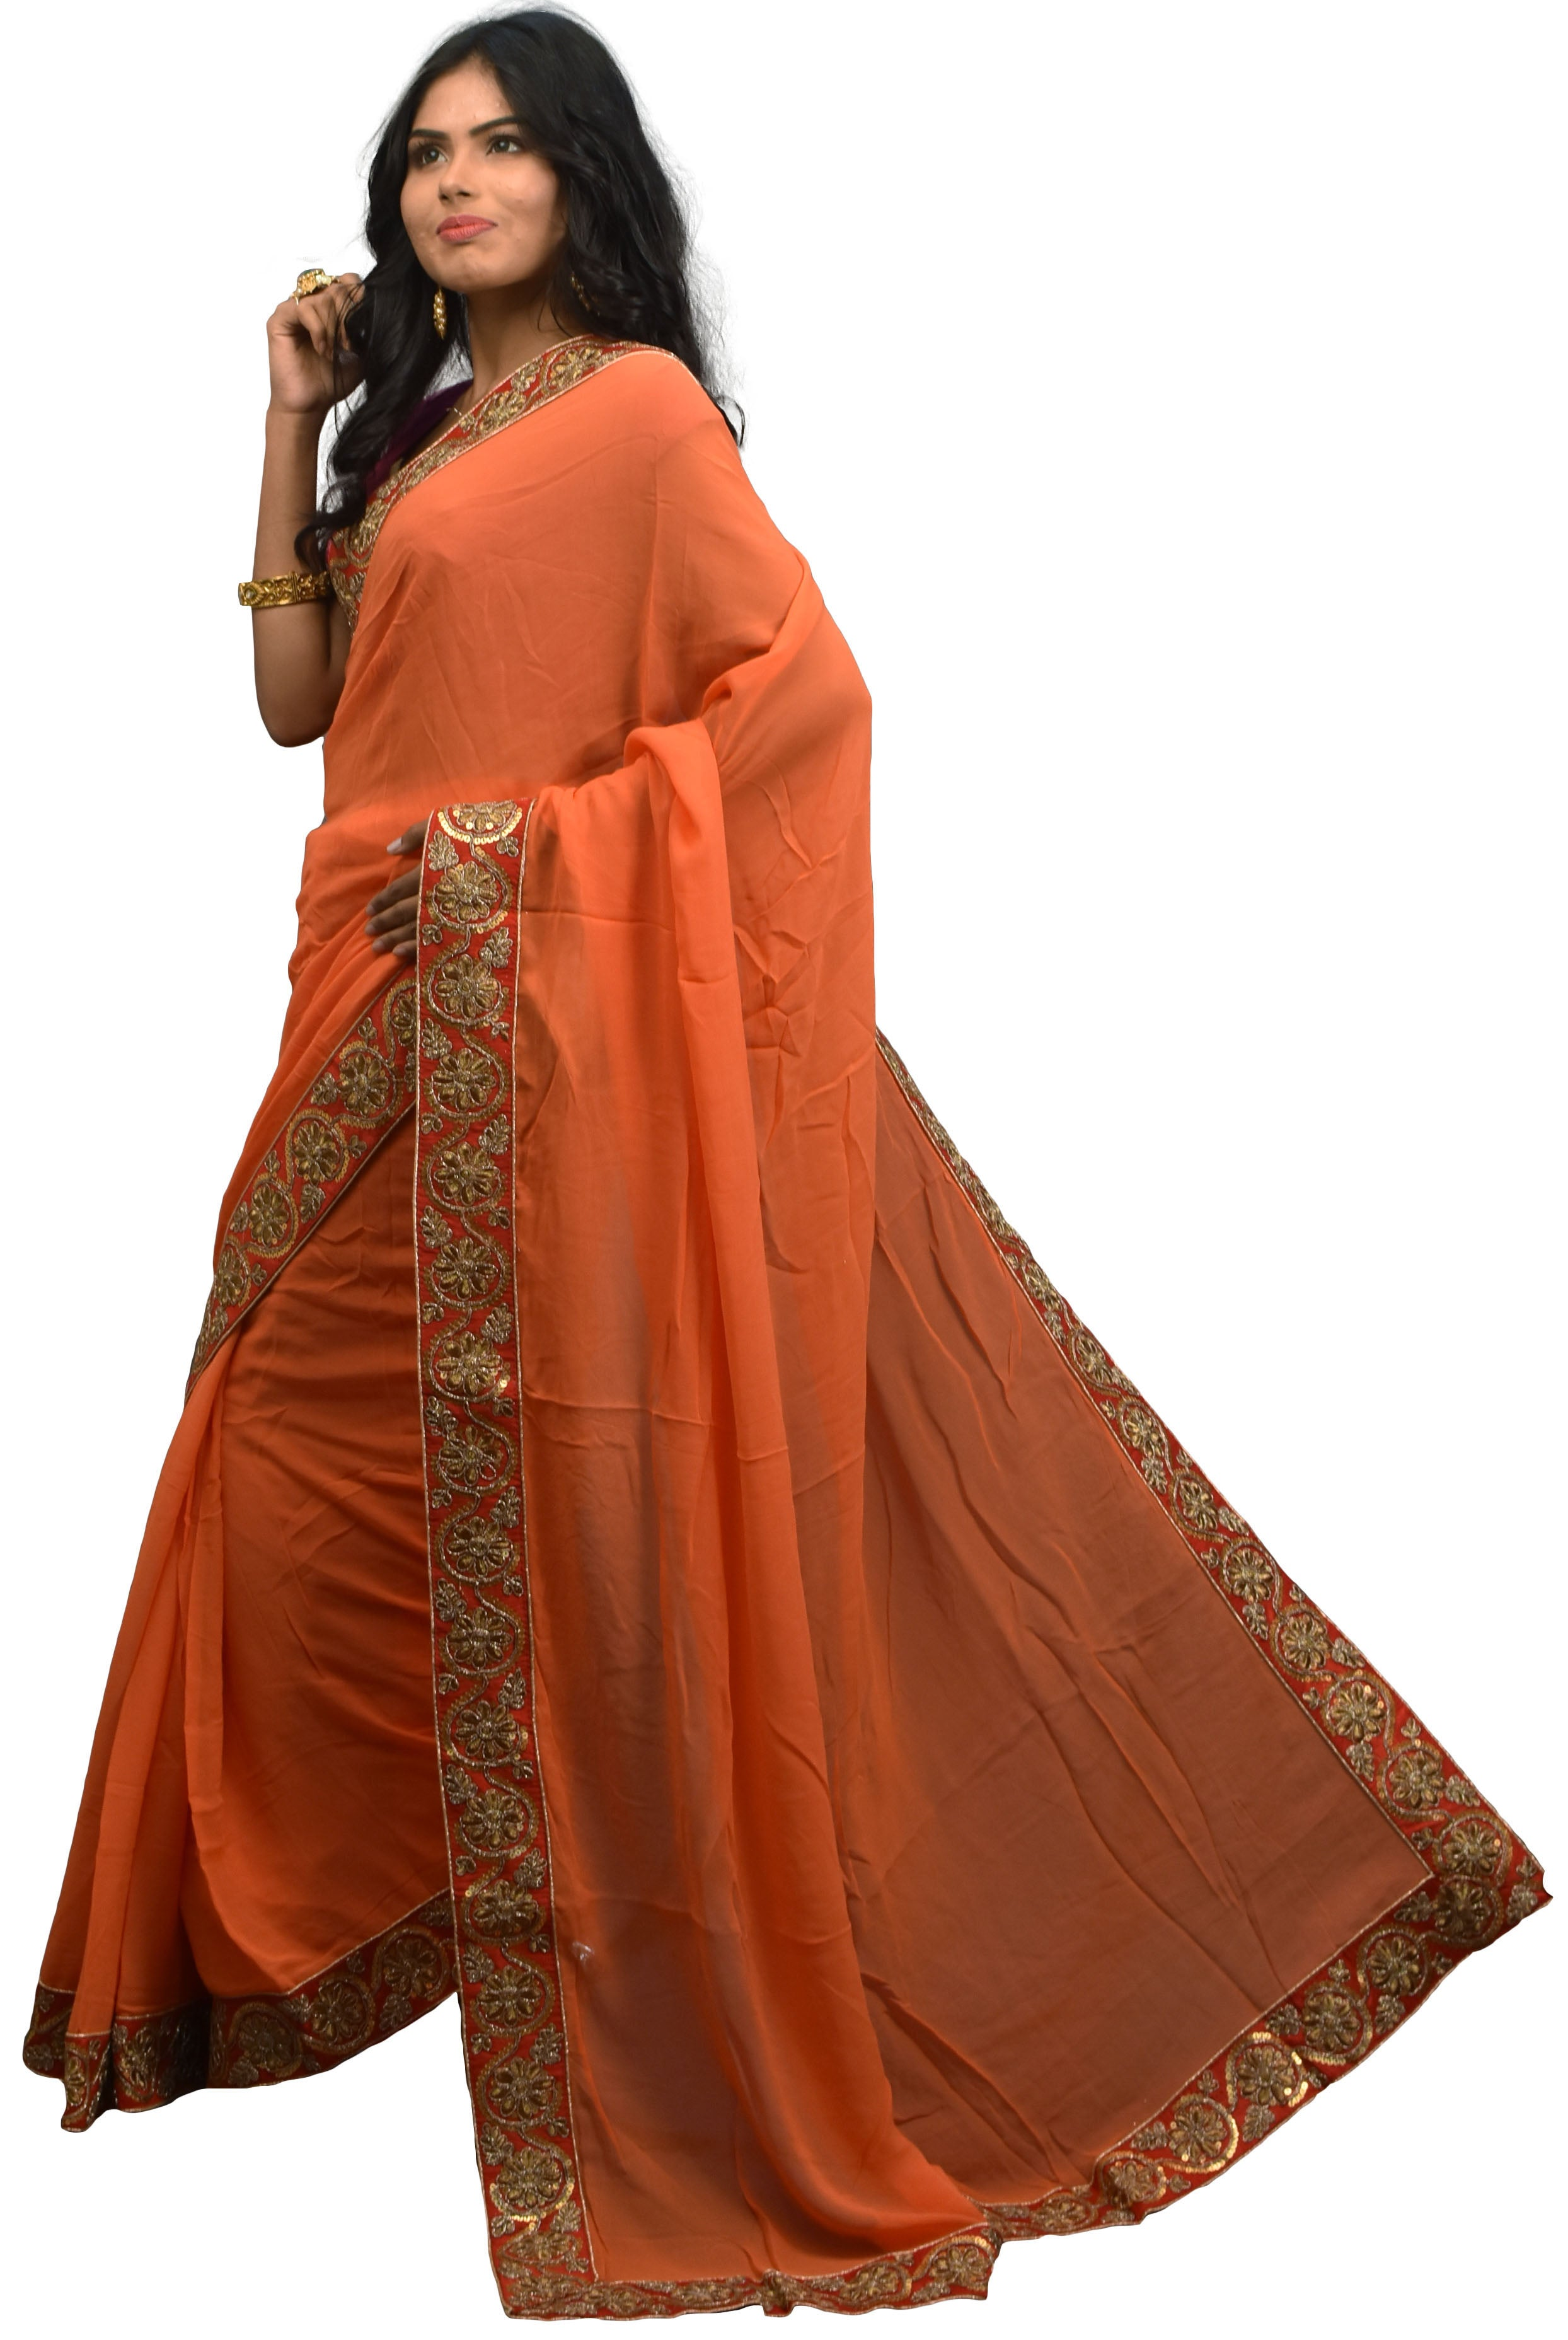 SMSAREE Orange Designer Wedding Partywear Crepe (Chinon) Sequence & Zari Hand Embroidery Work Bridal Saree Sari With Blouse Piece E515